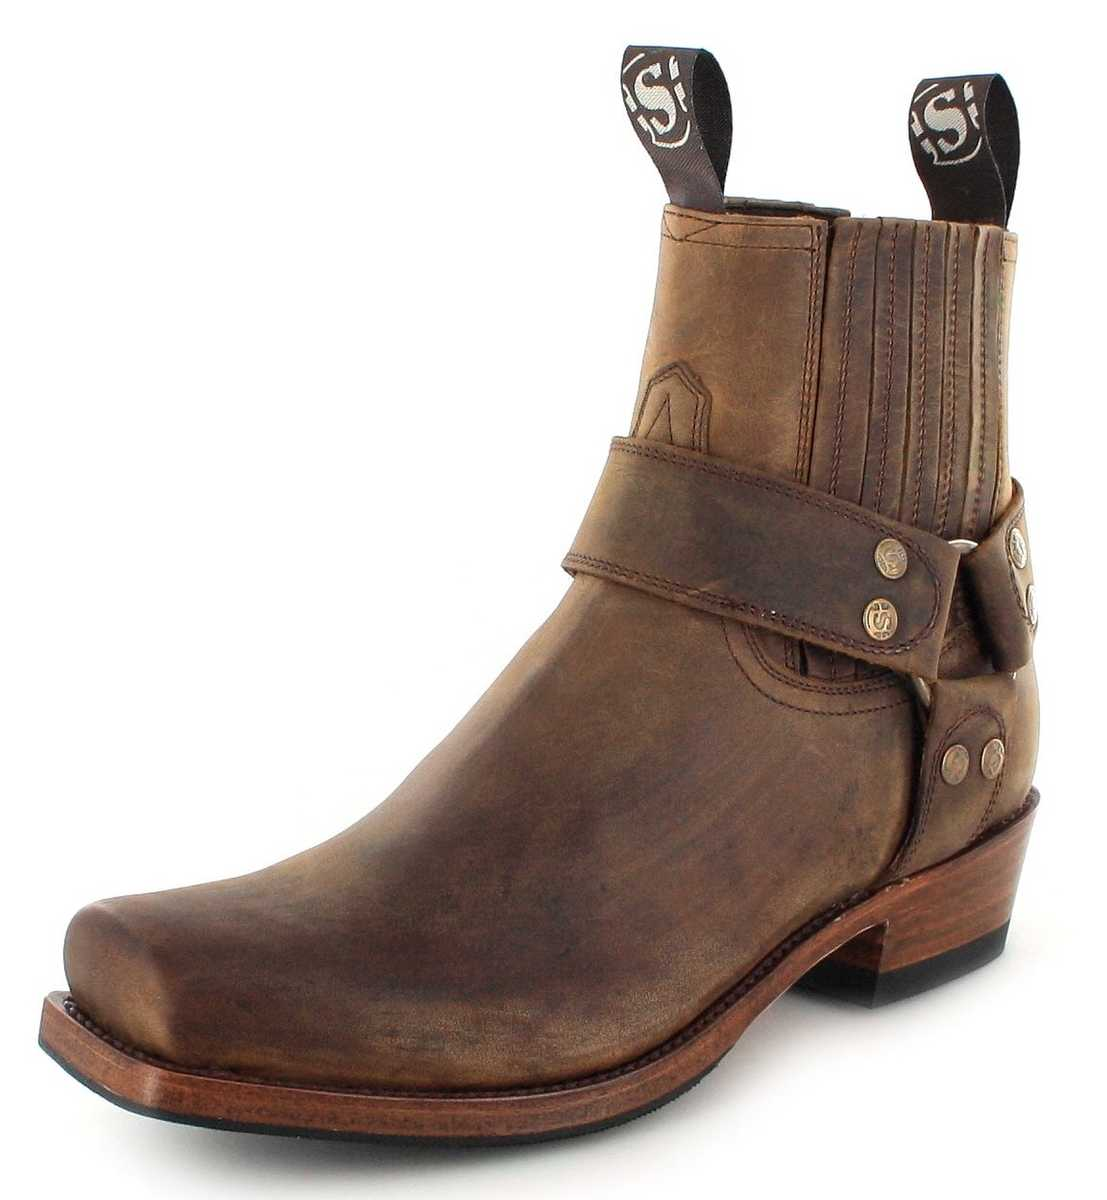 Sendra Boots 8286 Tang biker ankle boot - Brown